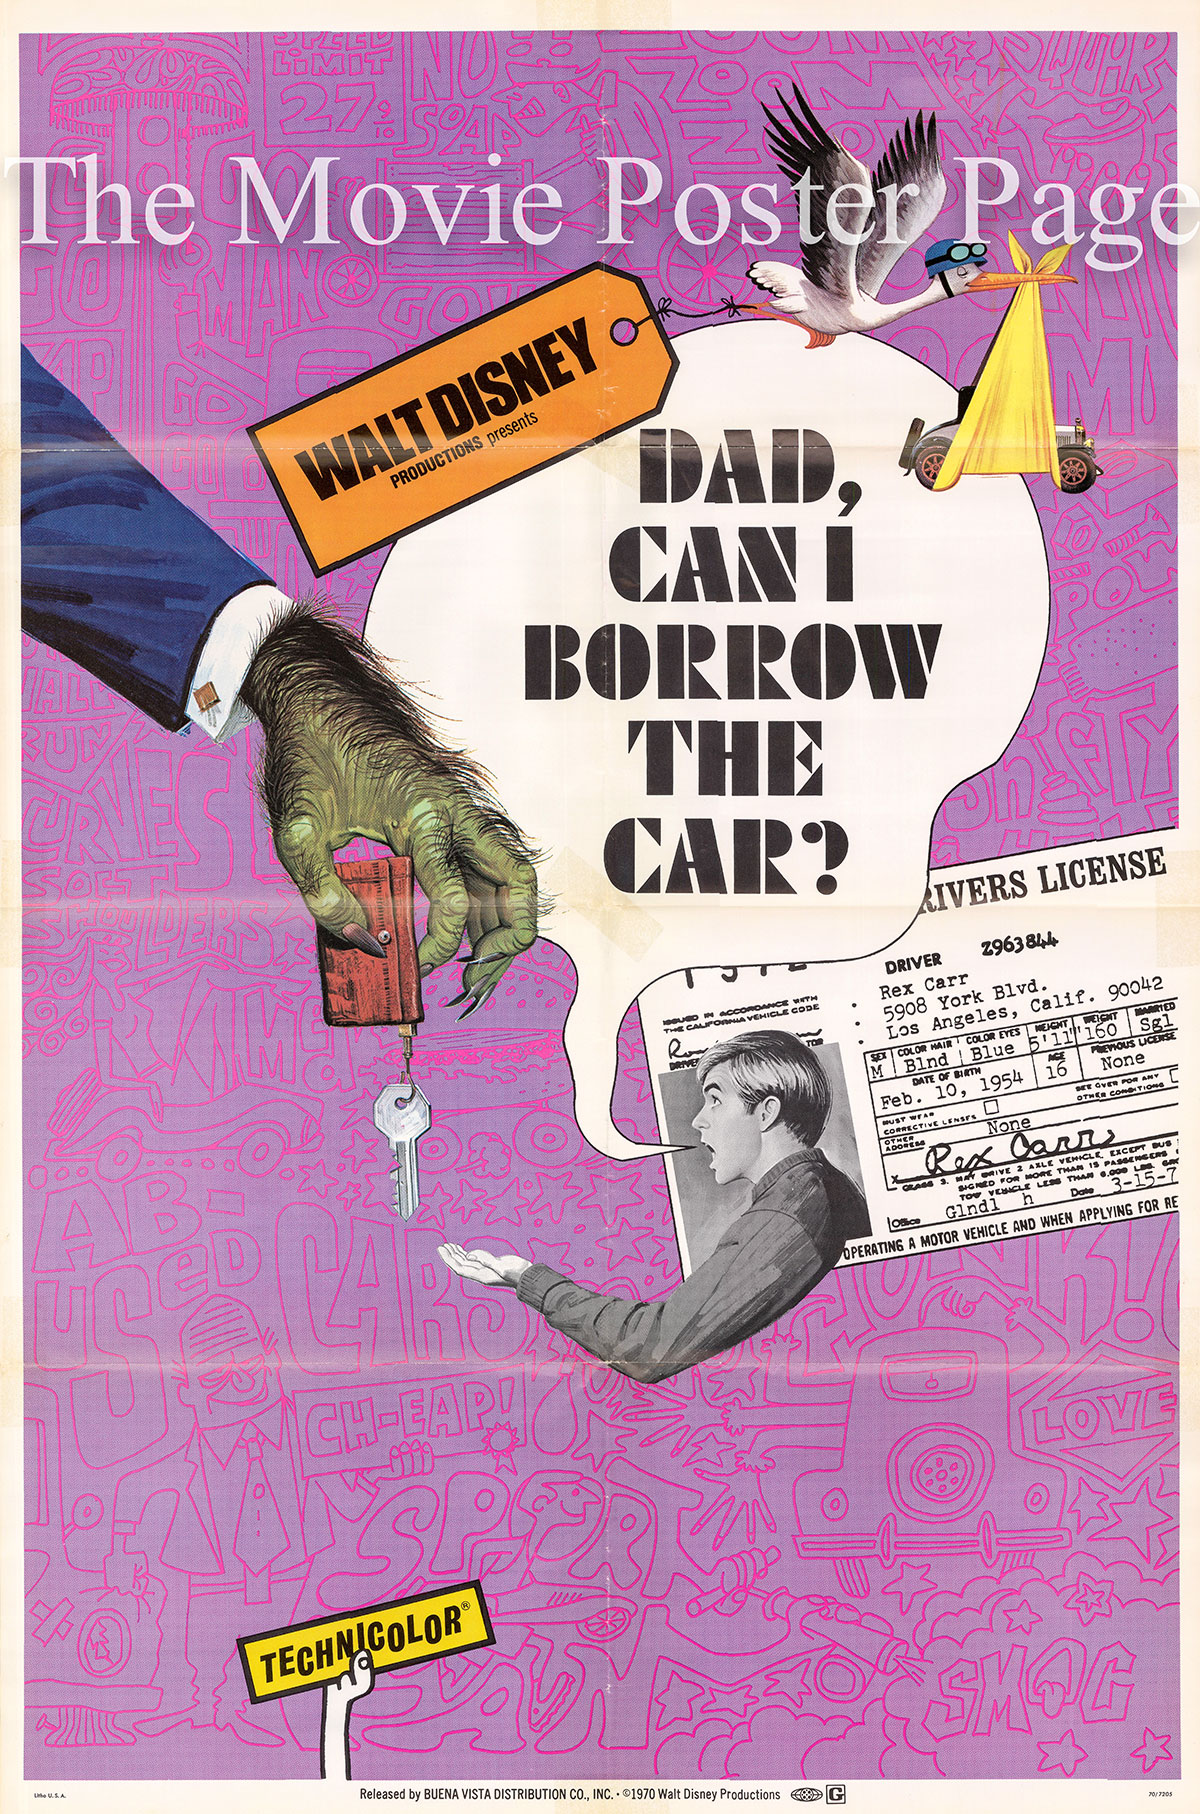 Pictured is a US promotional poster for the 1970 Ward Kimball film Dad, Can I Borrow the Car? starring Kurt Russell as the narrator.